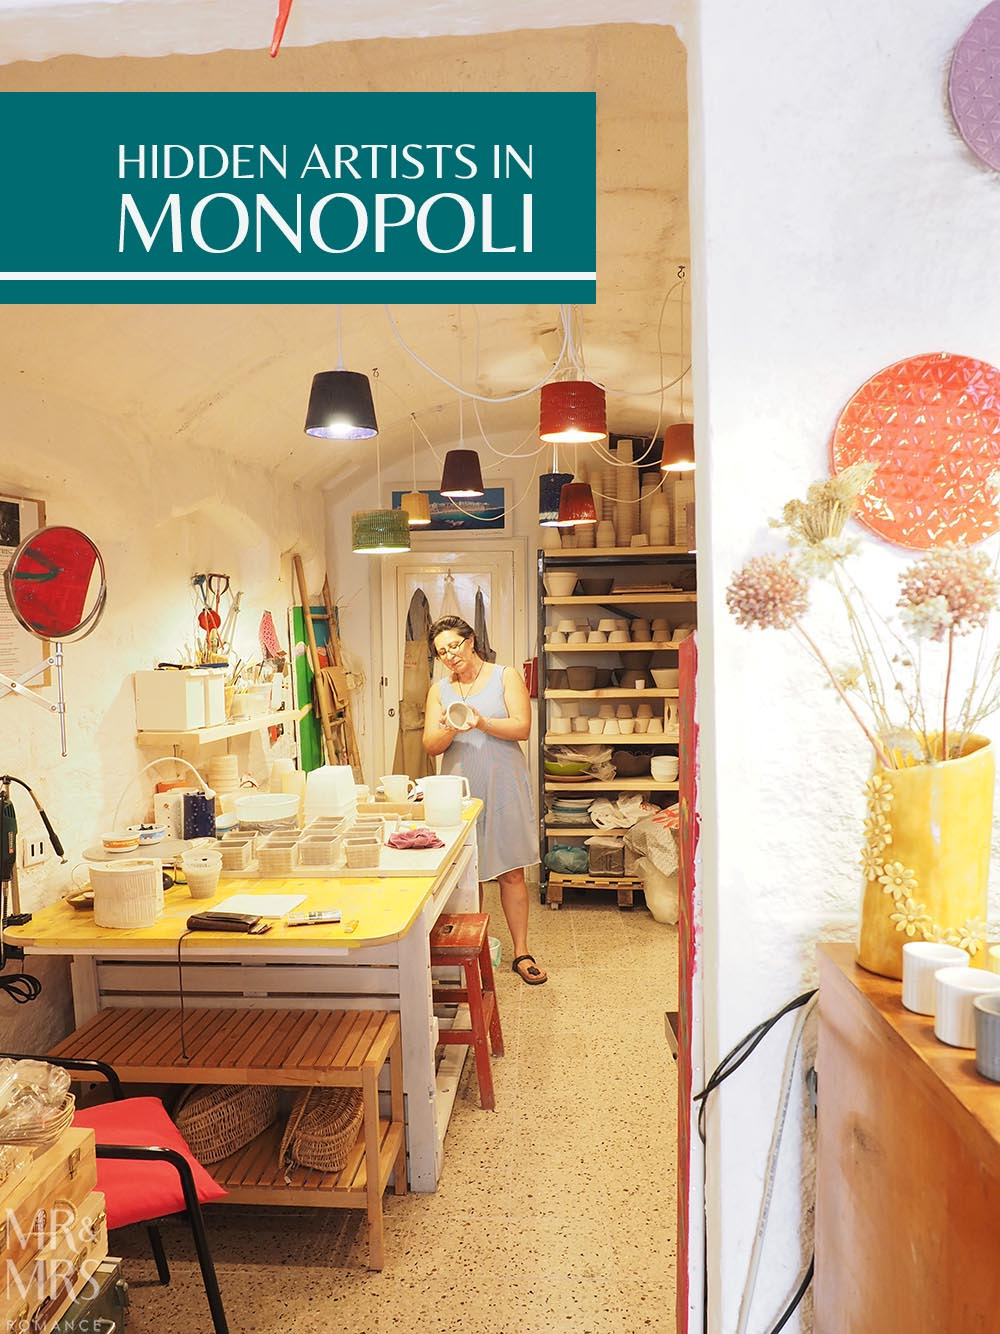 Italian art in Monopoli, Puglia - Mr & Mrs Romance